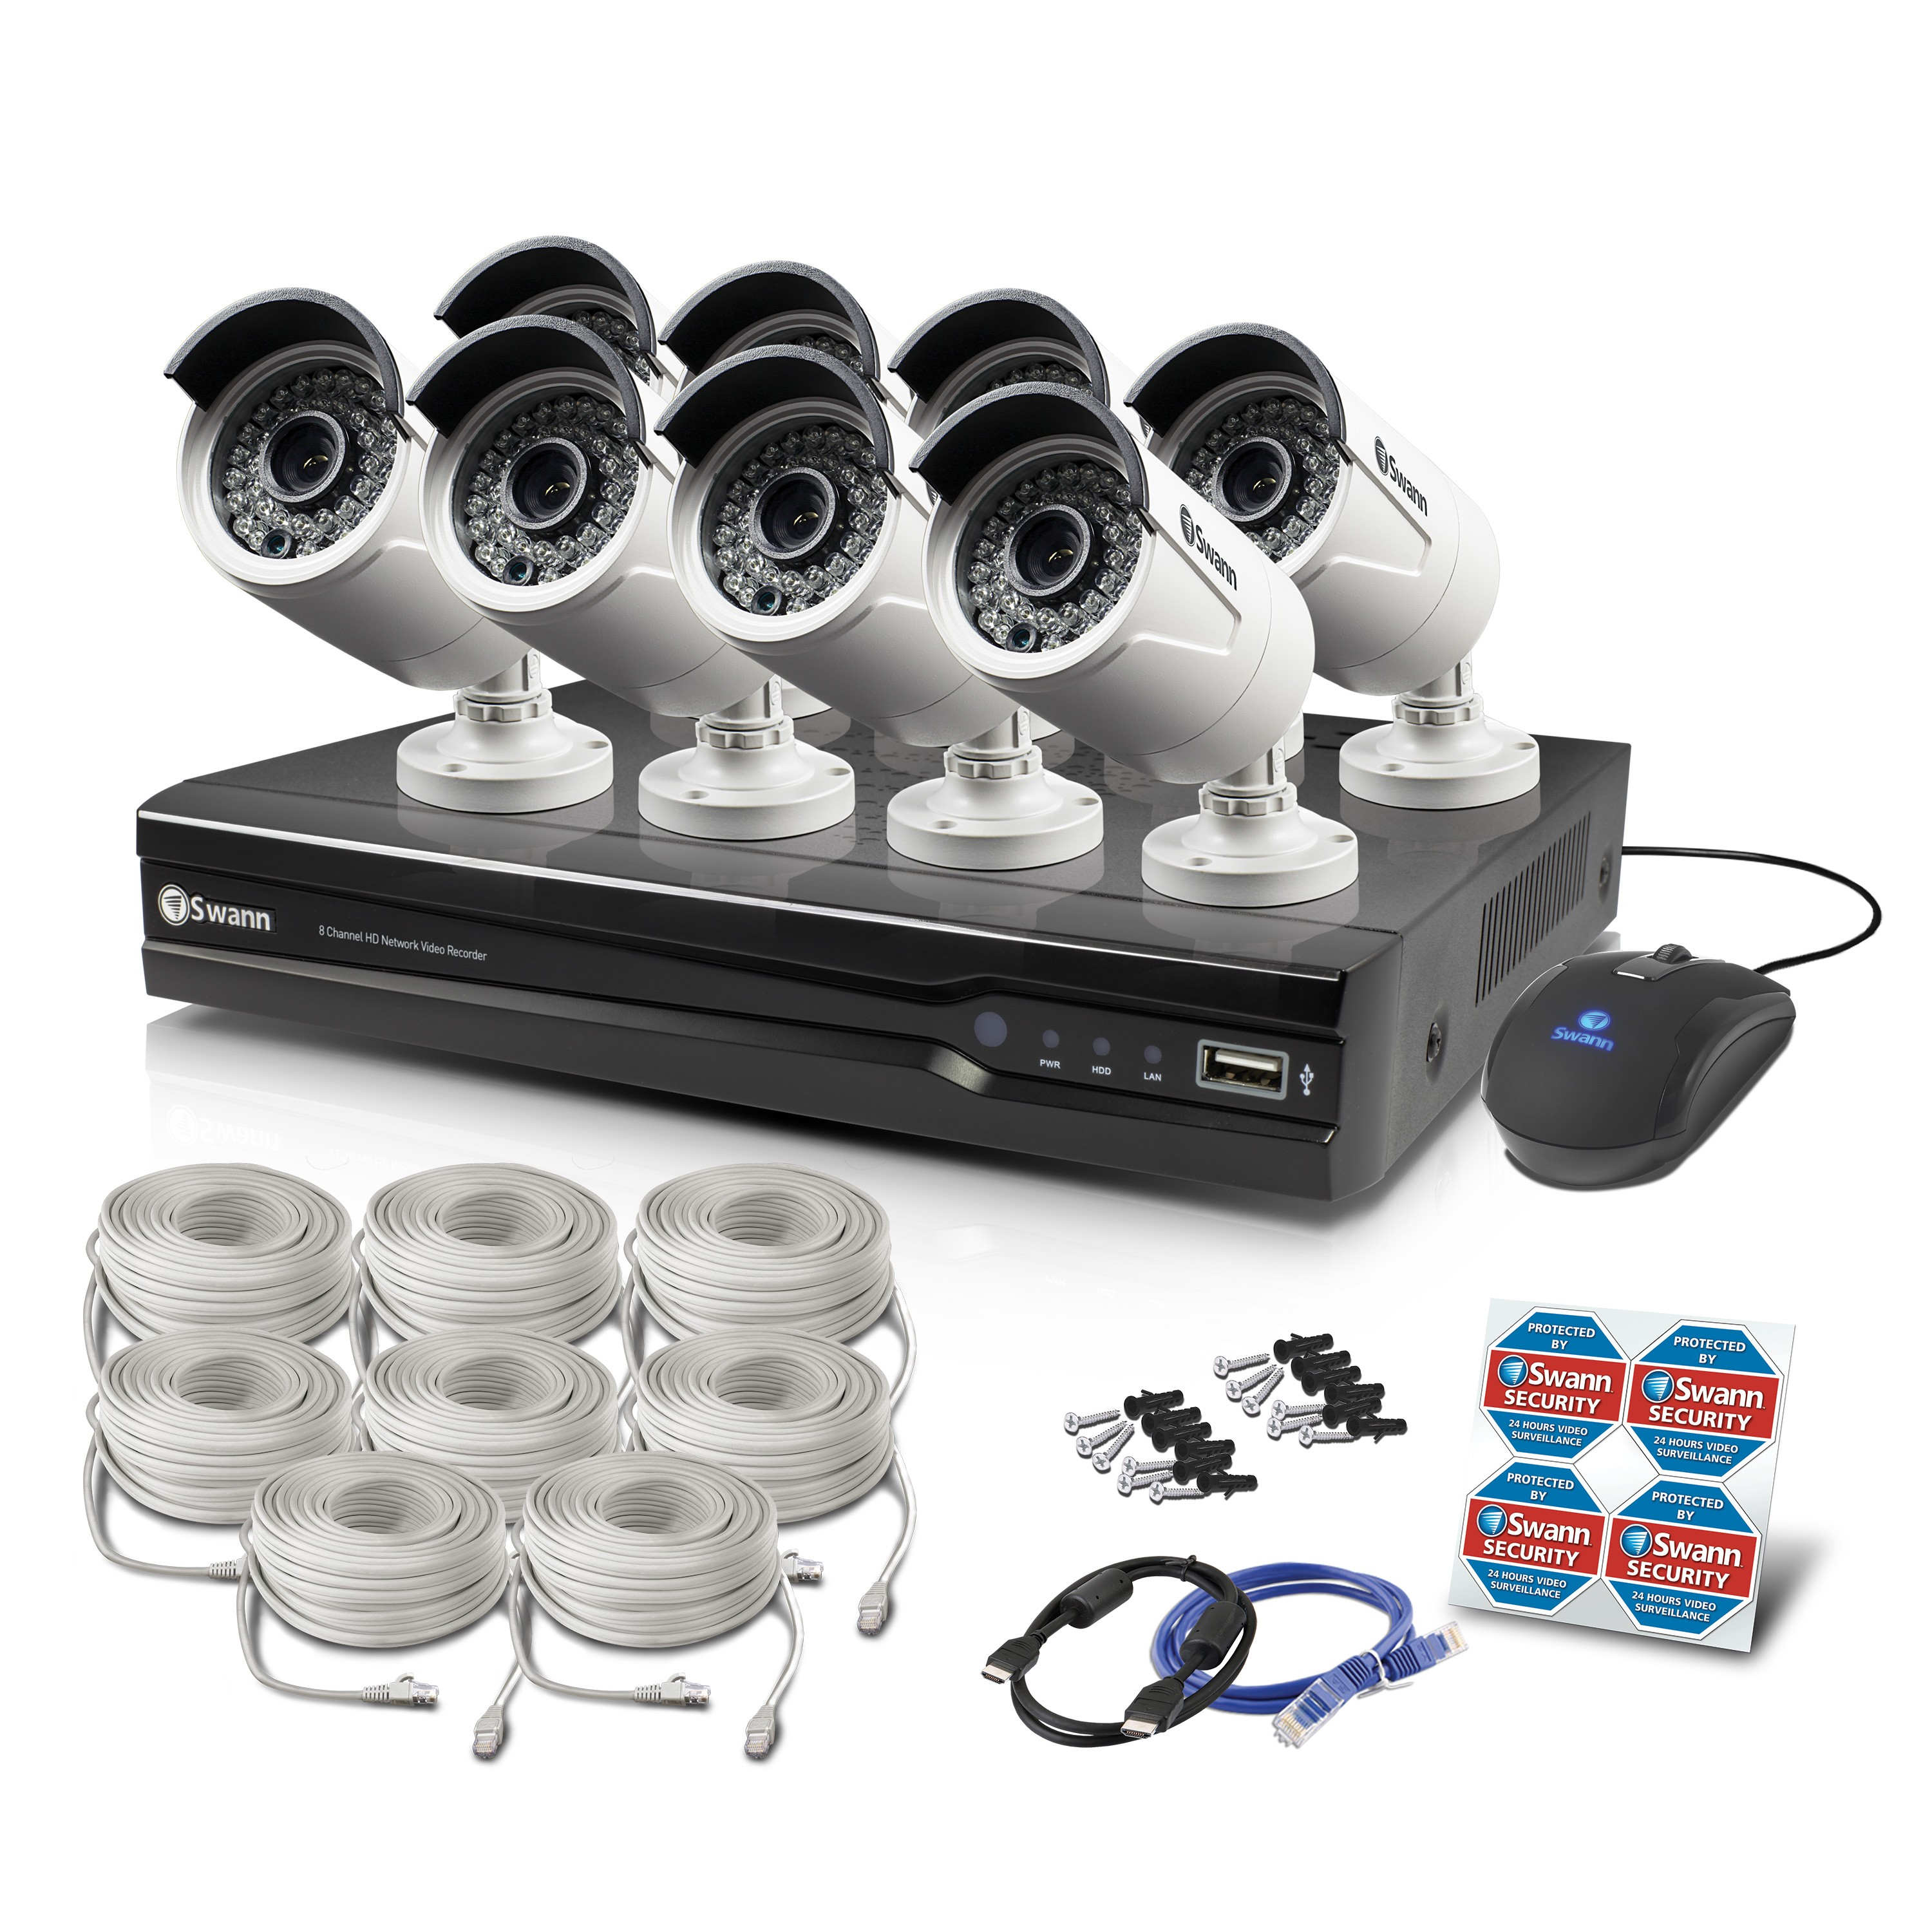 Nvr8 7300 8 Channel Home Security Systems Hd Camera Usa Video Diagram Labeled Chapter 4 The